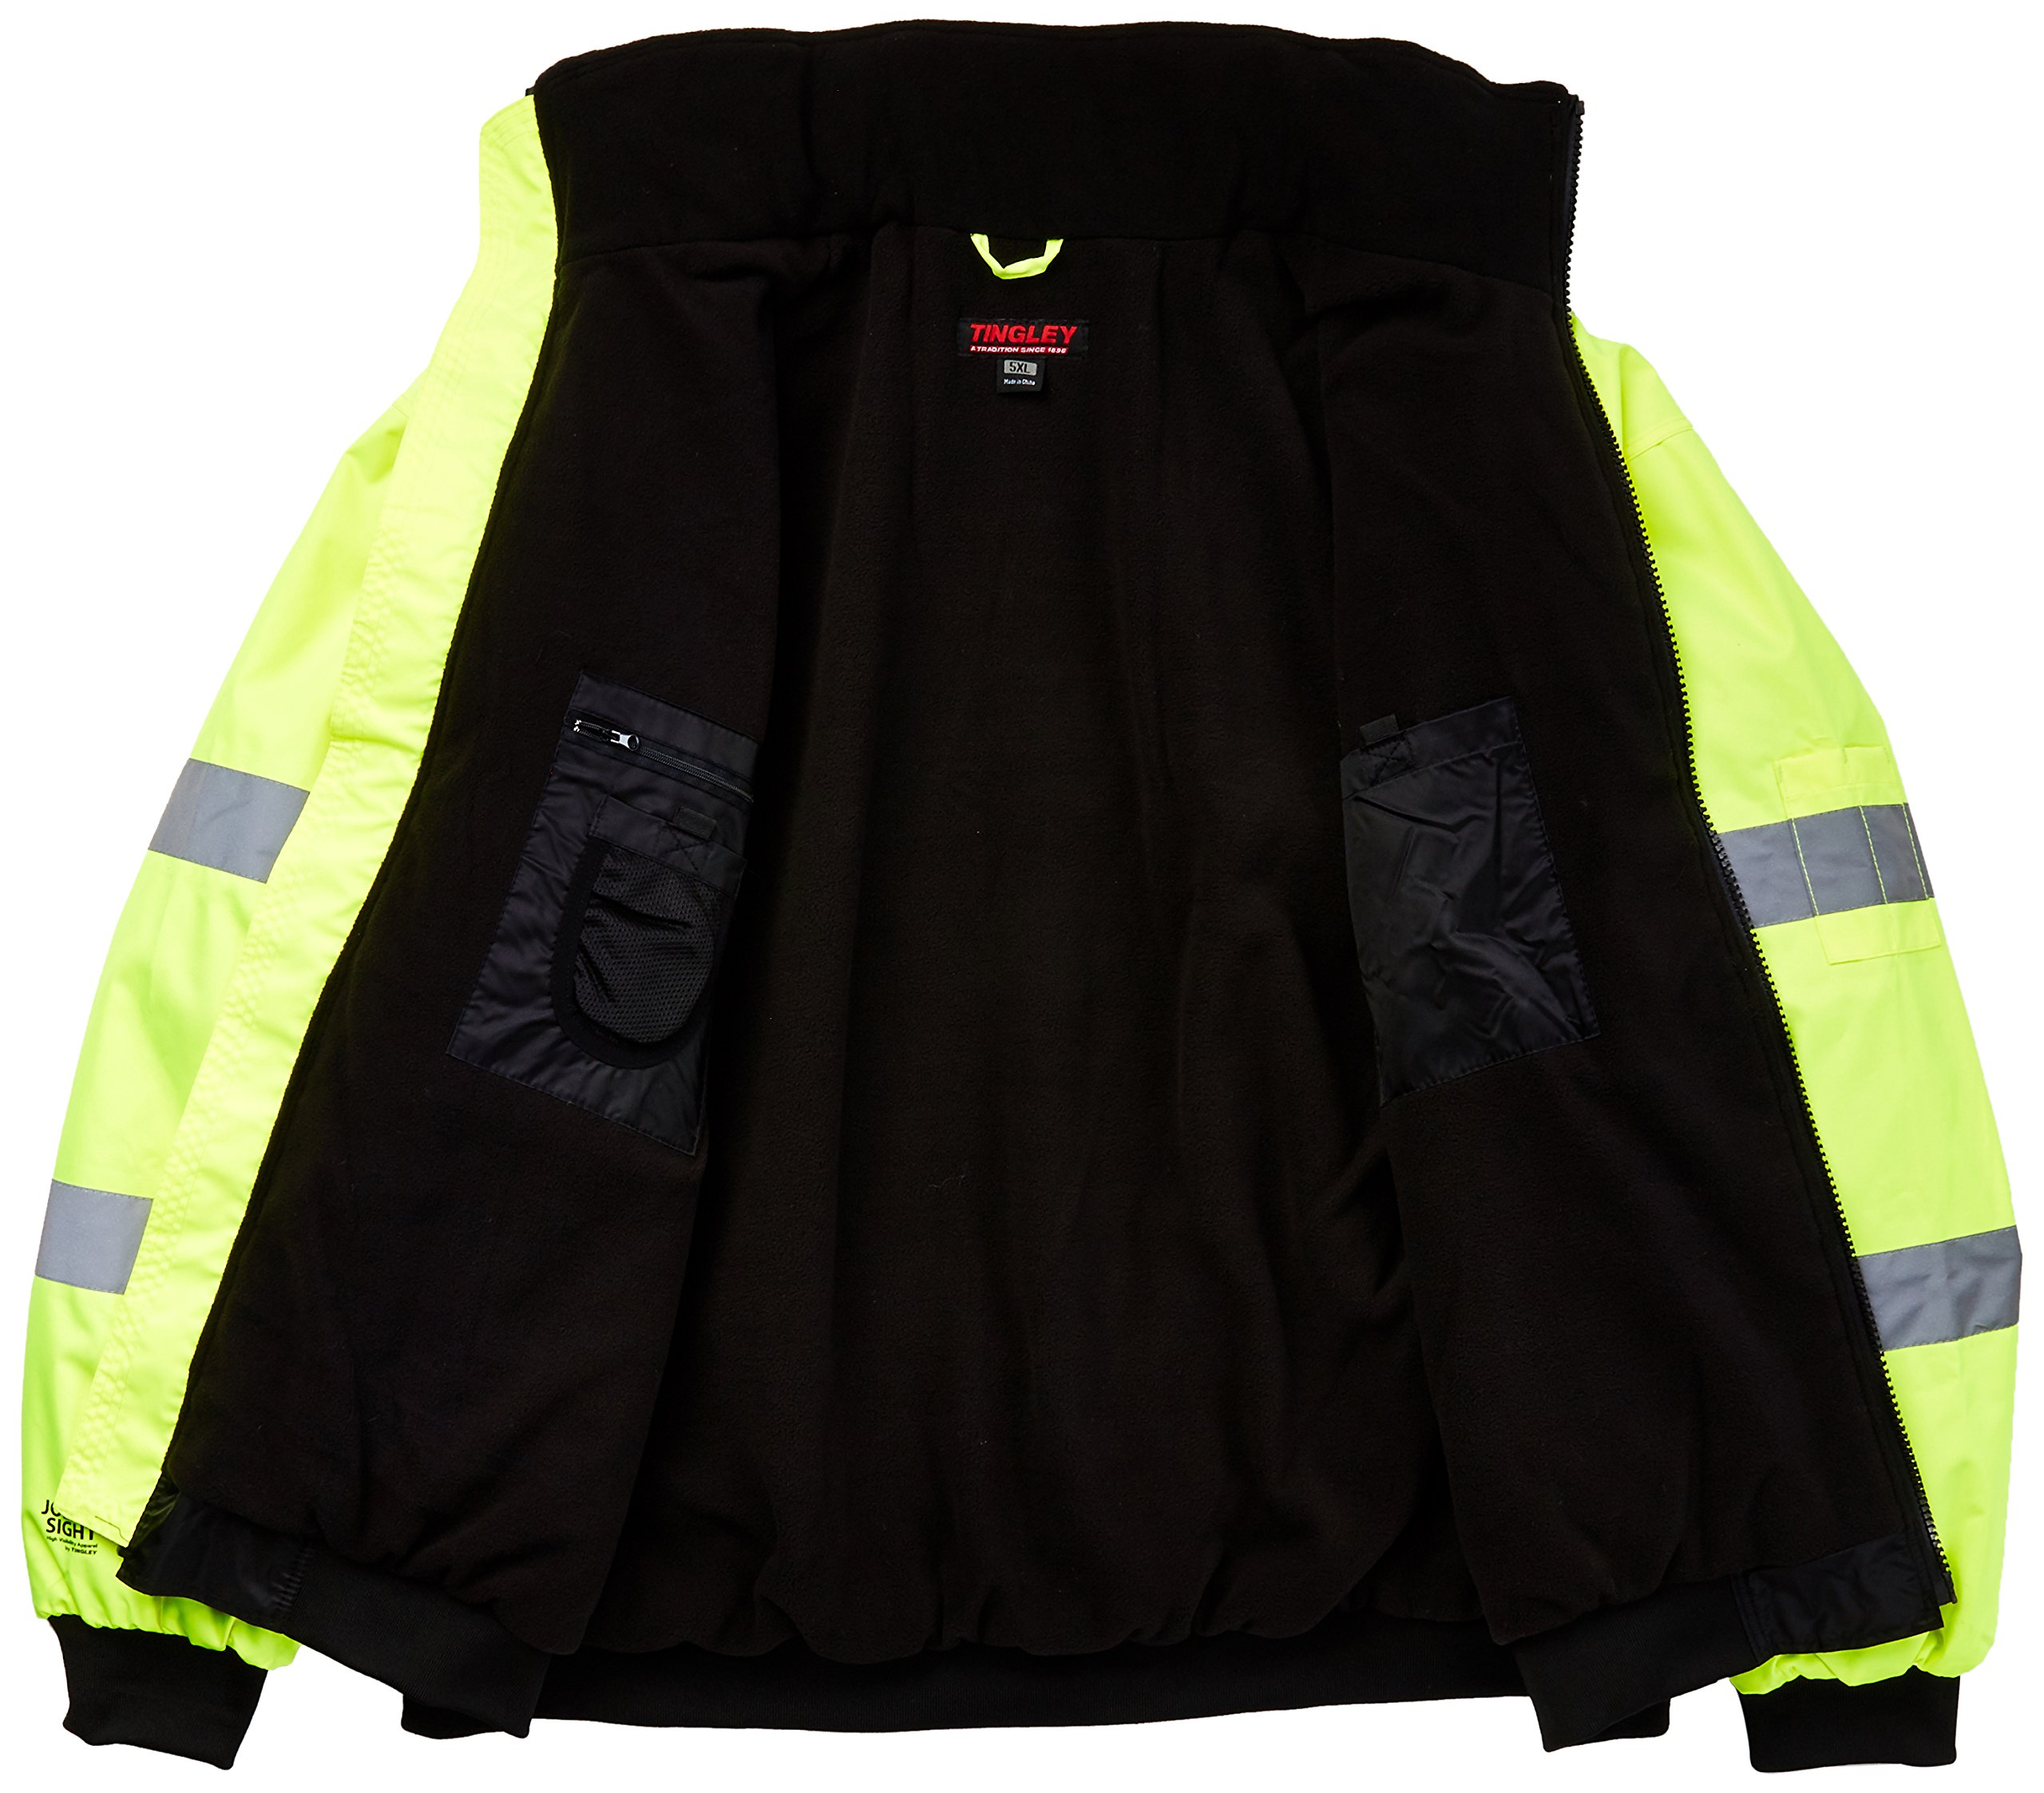 Bomber J26002.XL Jacket with 2'' Silver Reflective Tape, Size X-Large, Fluorescent Yellow/Green/Black by Bomber (Image #3)